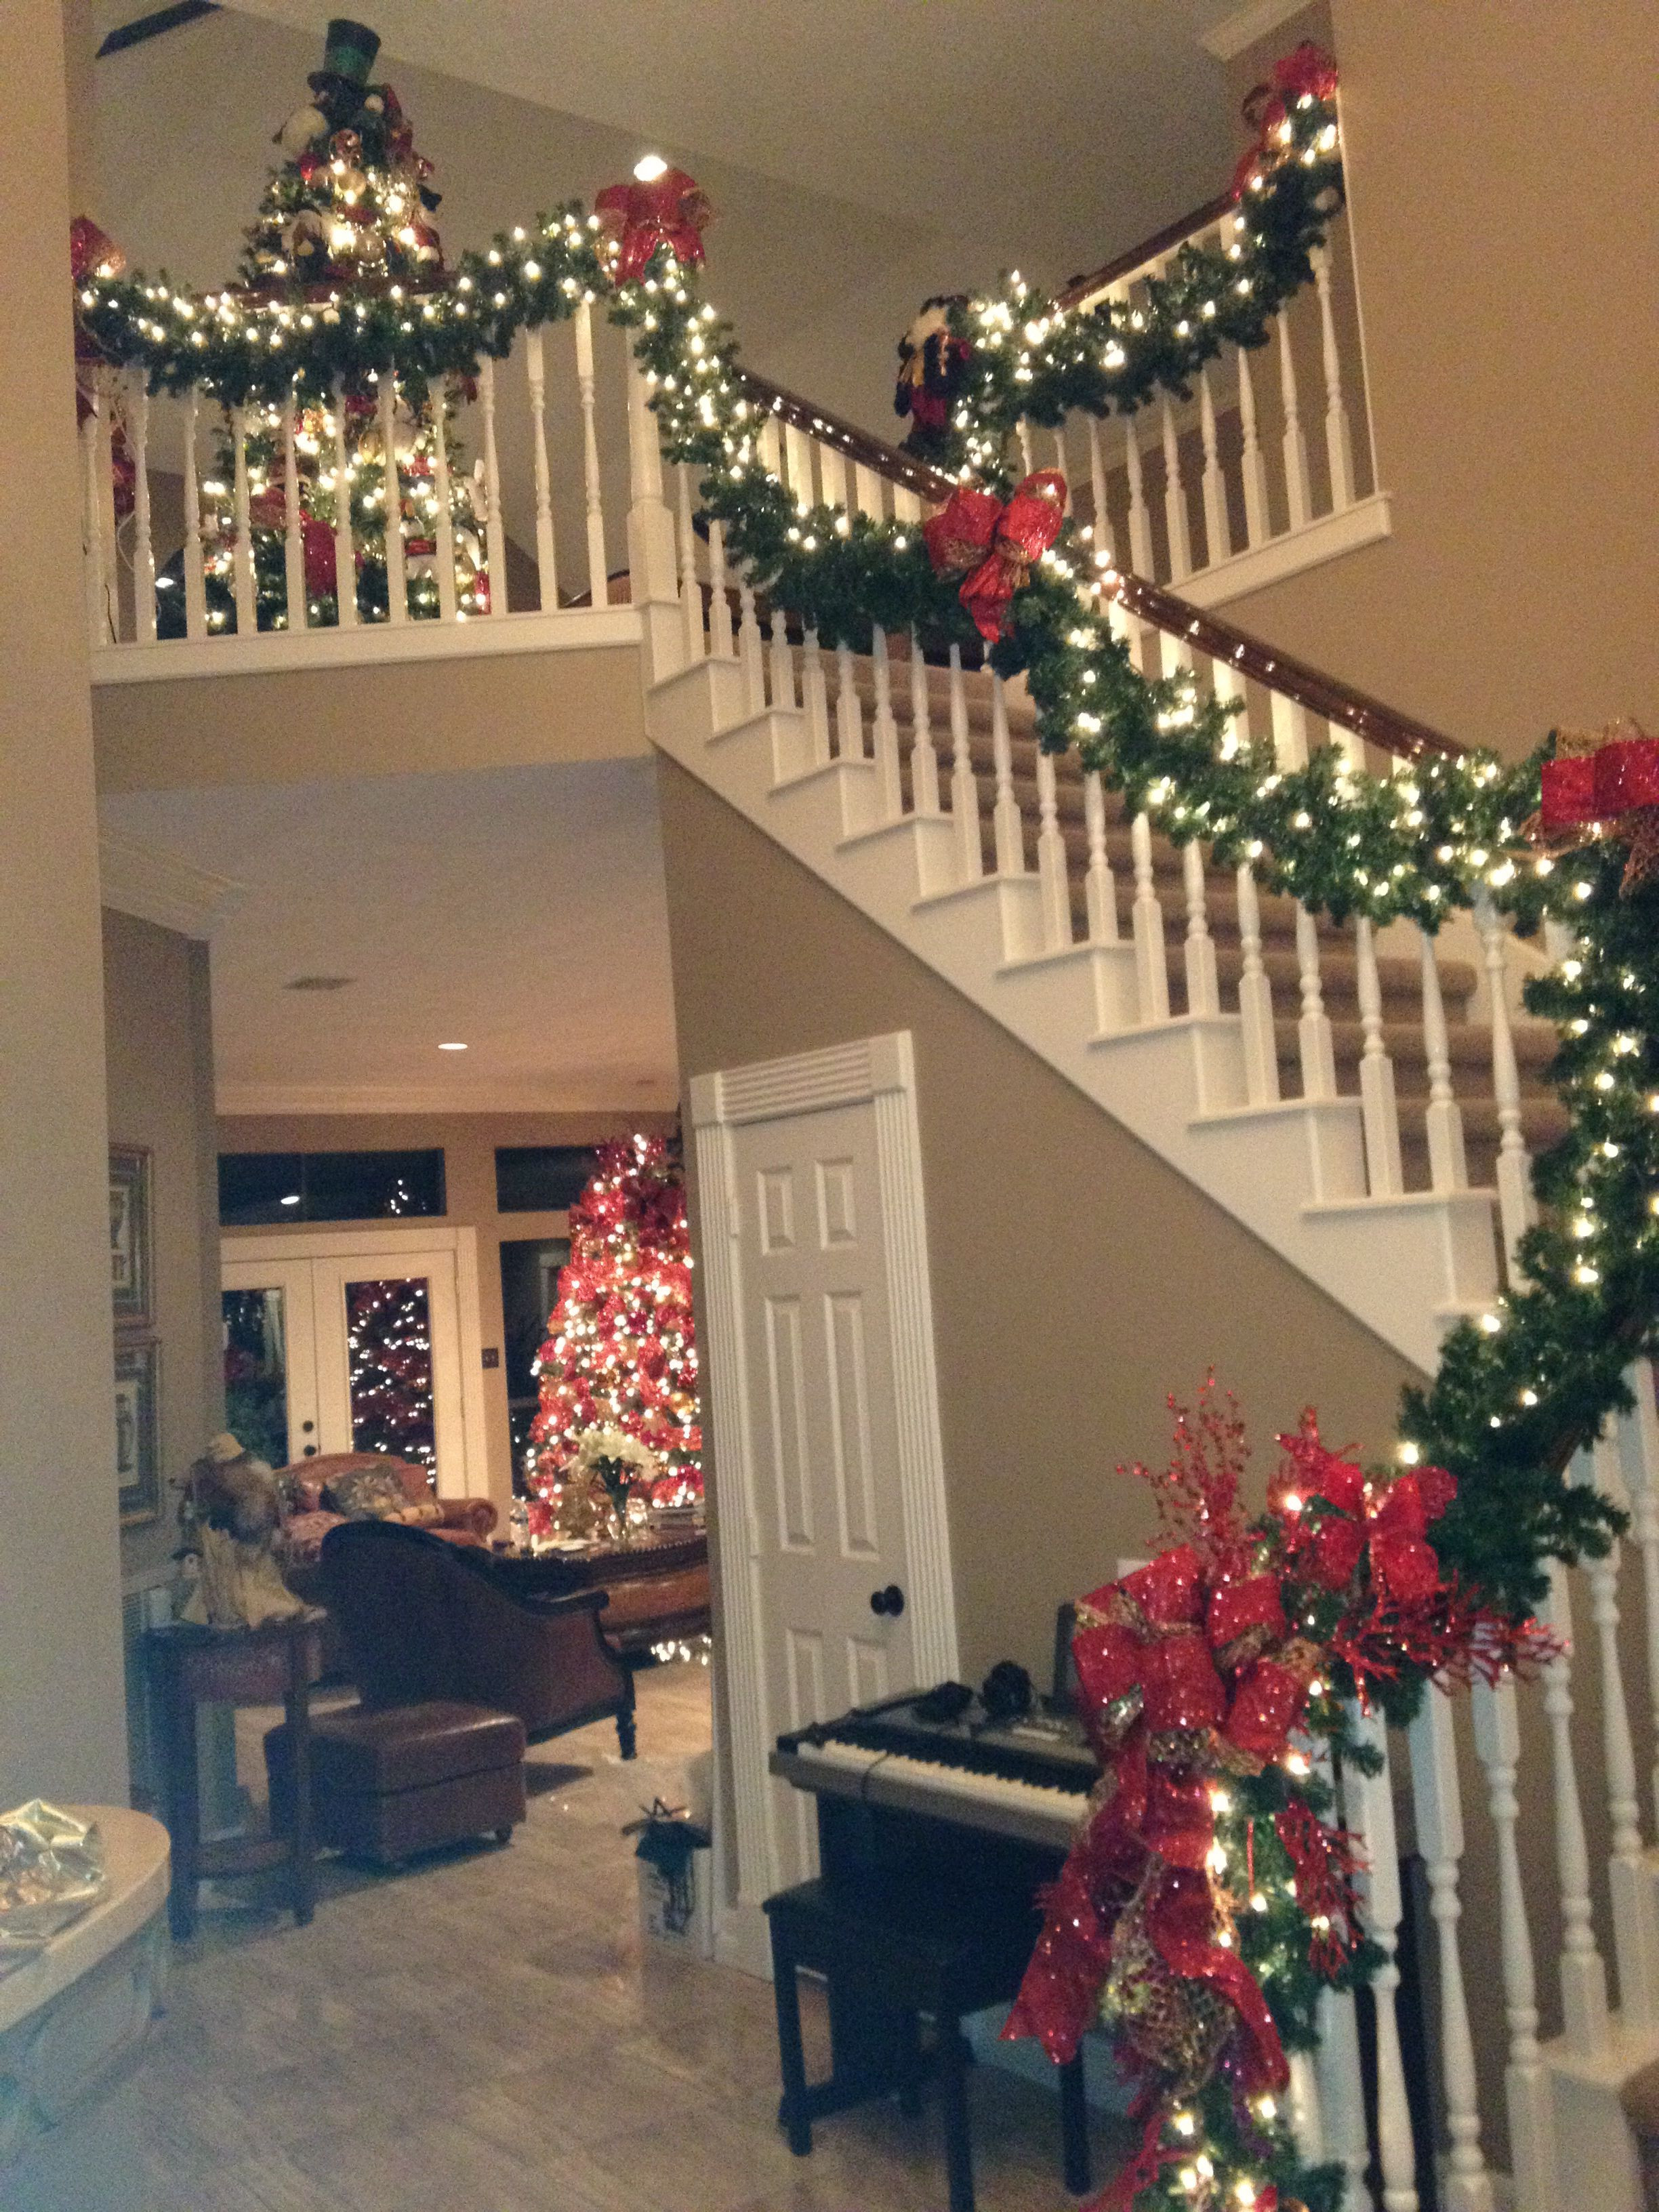 Staircase Christmas Decorations  Wrap it Design Holiday Decor Pinterest